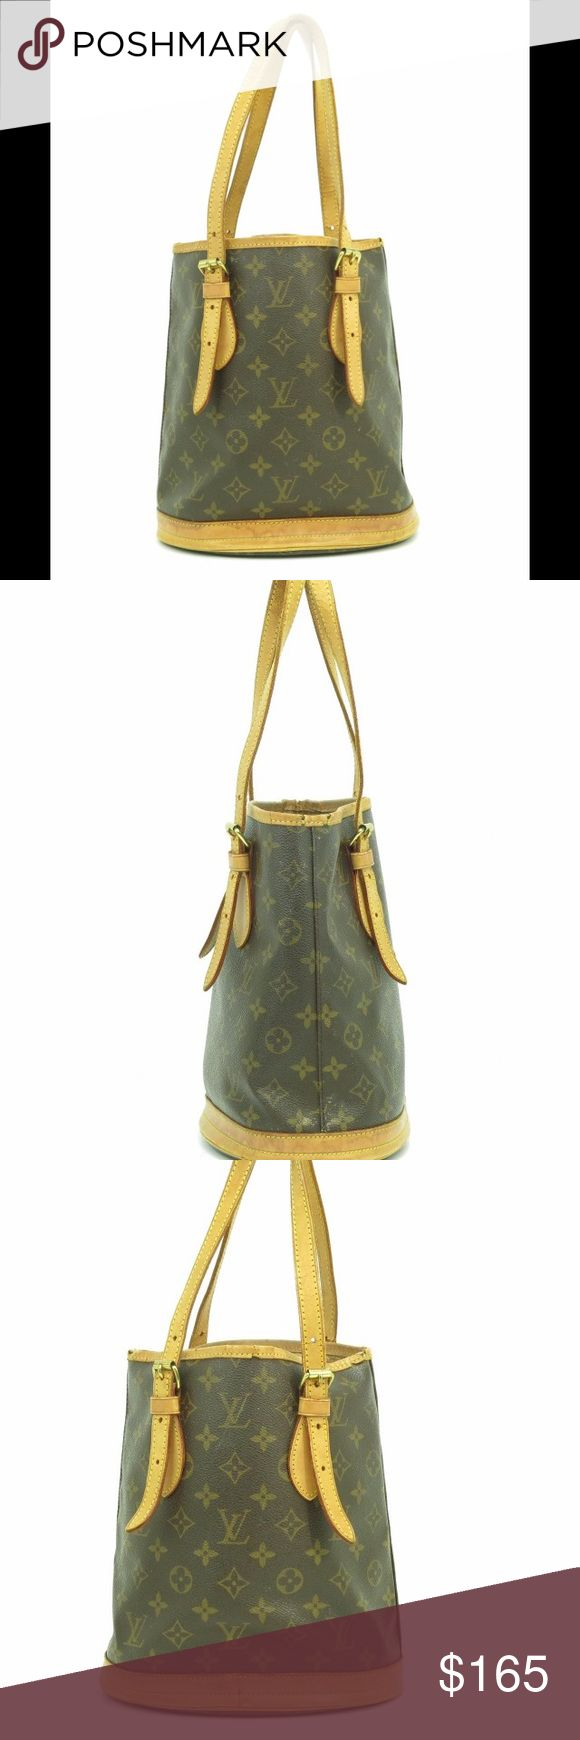 💯% Authentic lv petite bucket bag Good condition inside and out. Please see pictures. Louis Vuitton Bags Shoulder Bags